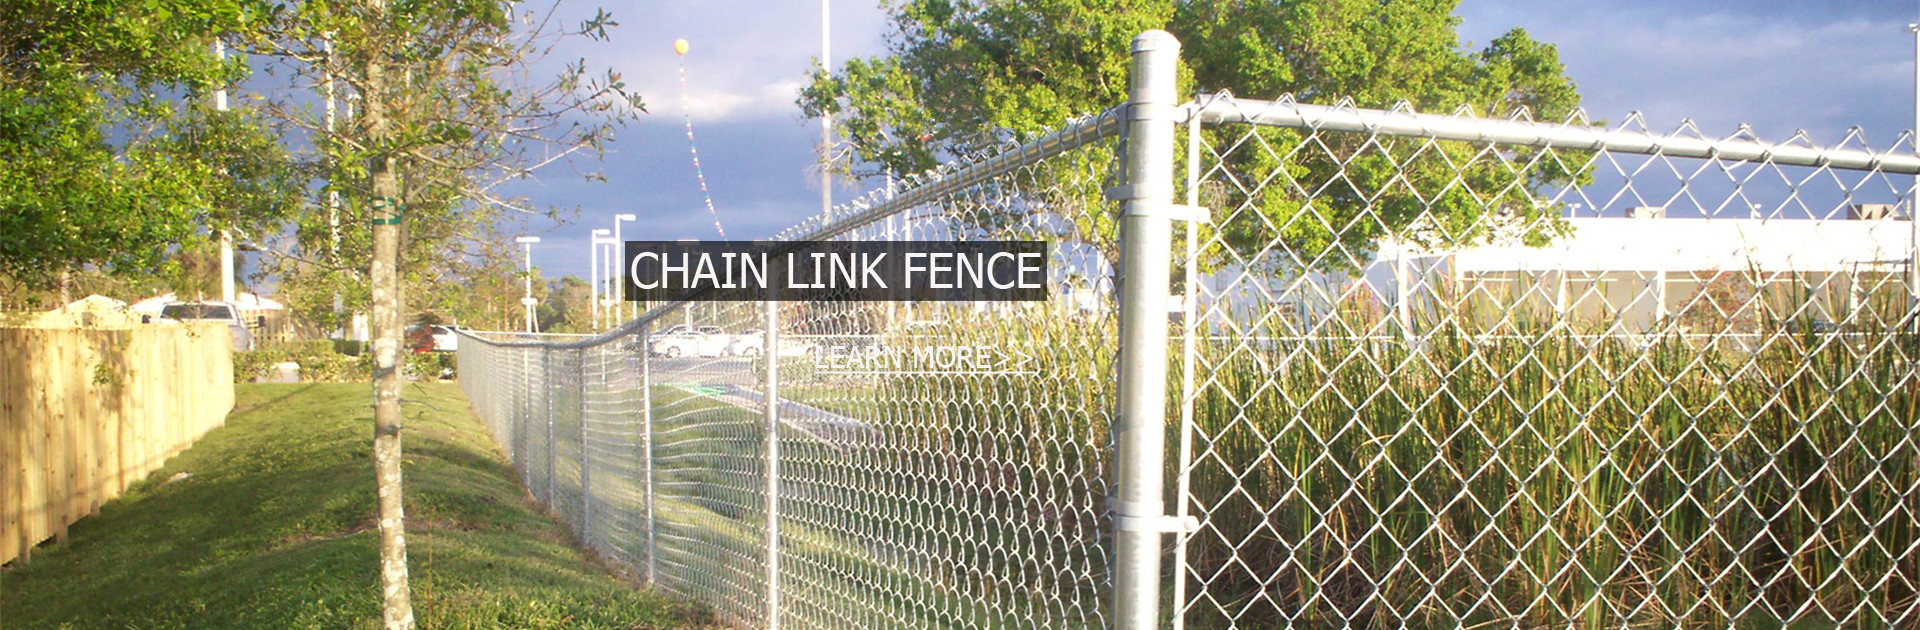 Diamond Mesh Chain Link Fence - HUXING WIRE MESH